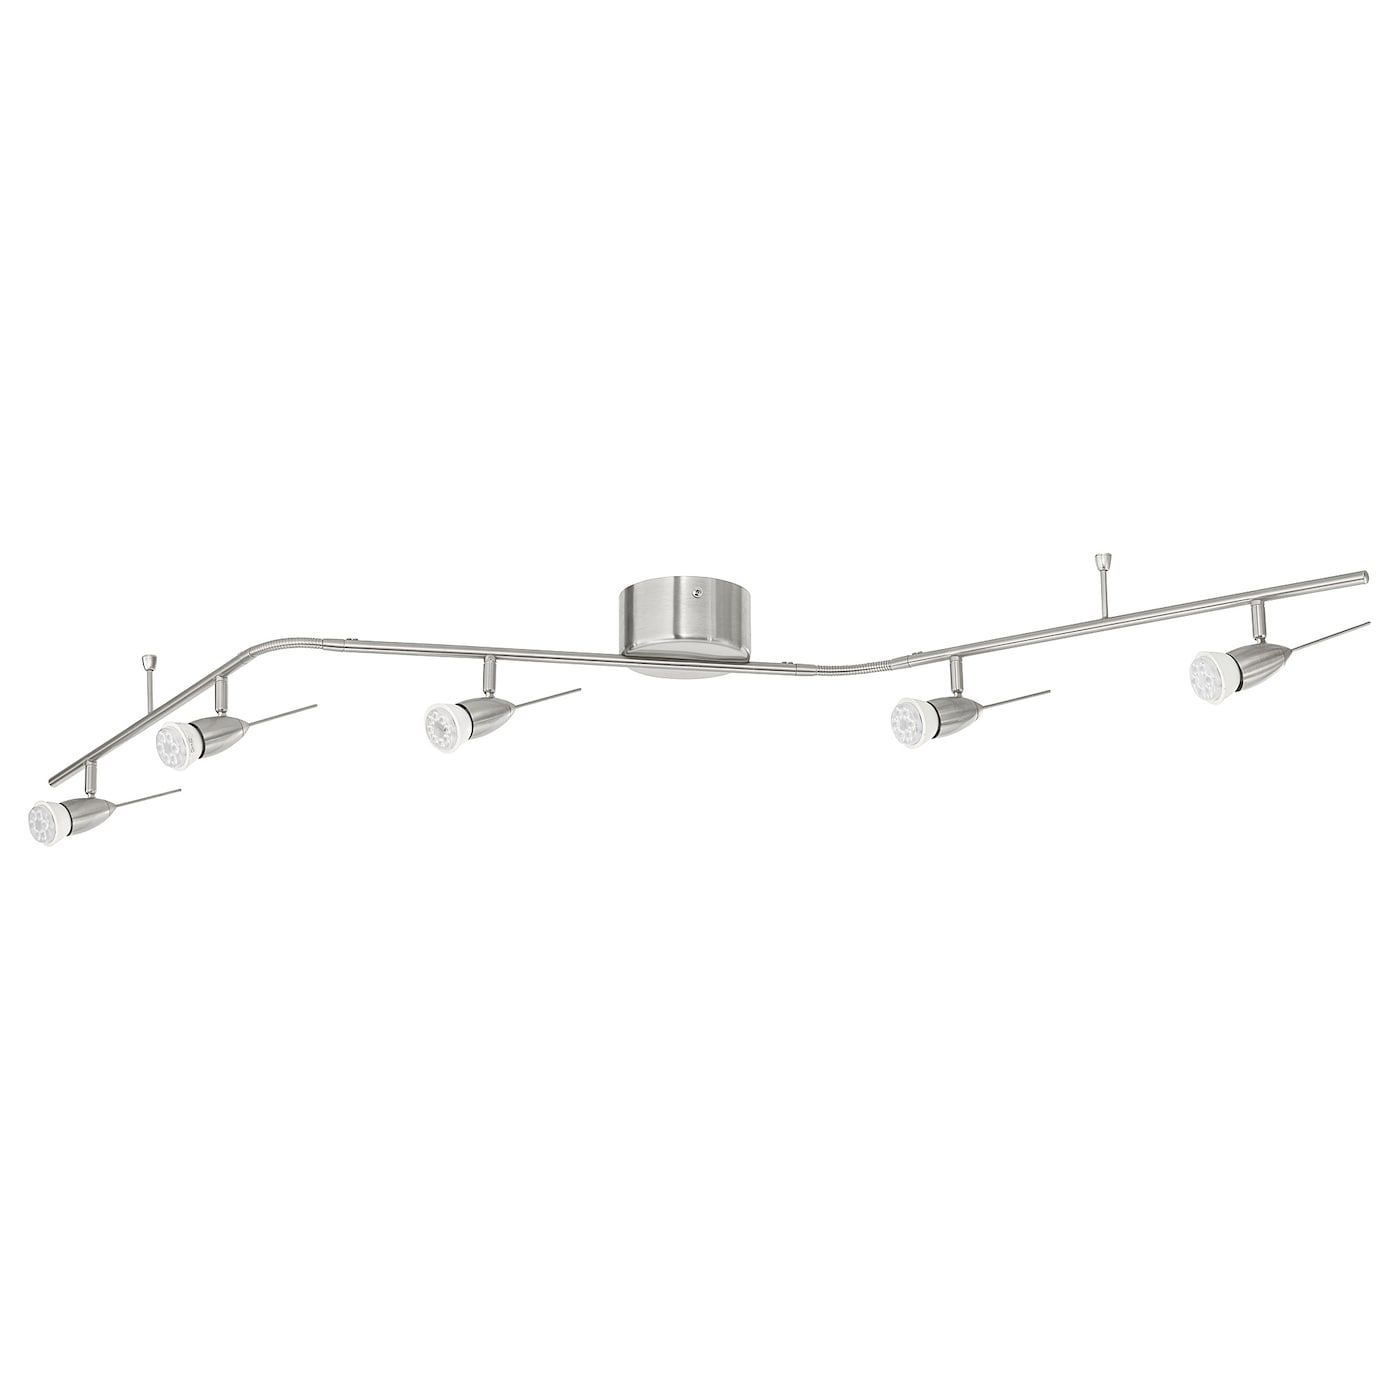 Husinge Ceiling Track 5 Spots Nickel Plated Ikea In 2021 Ceiling Lights Ceiling Pendant Lamp Shade